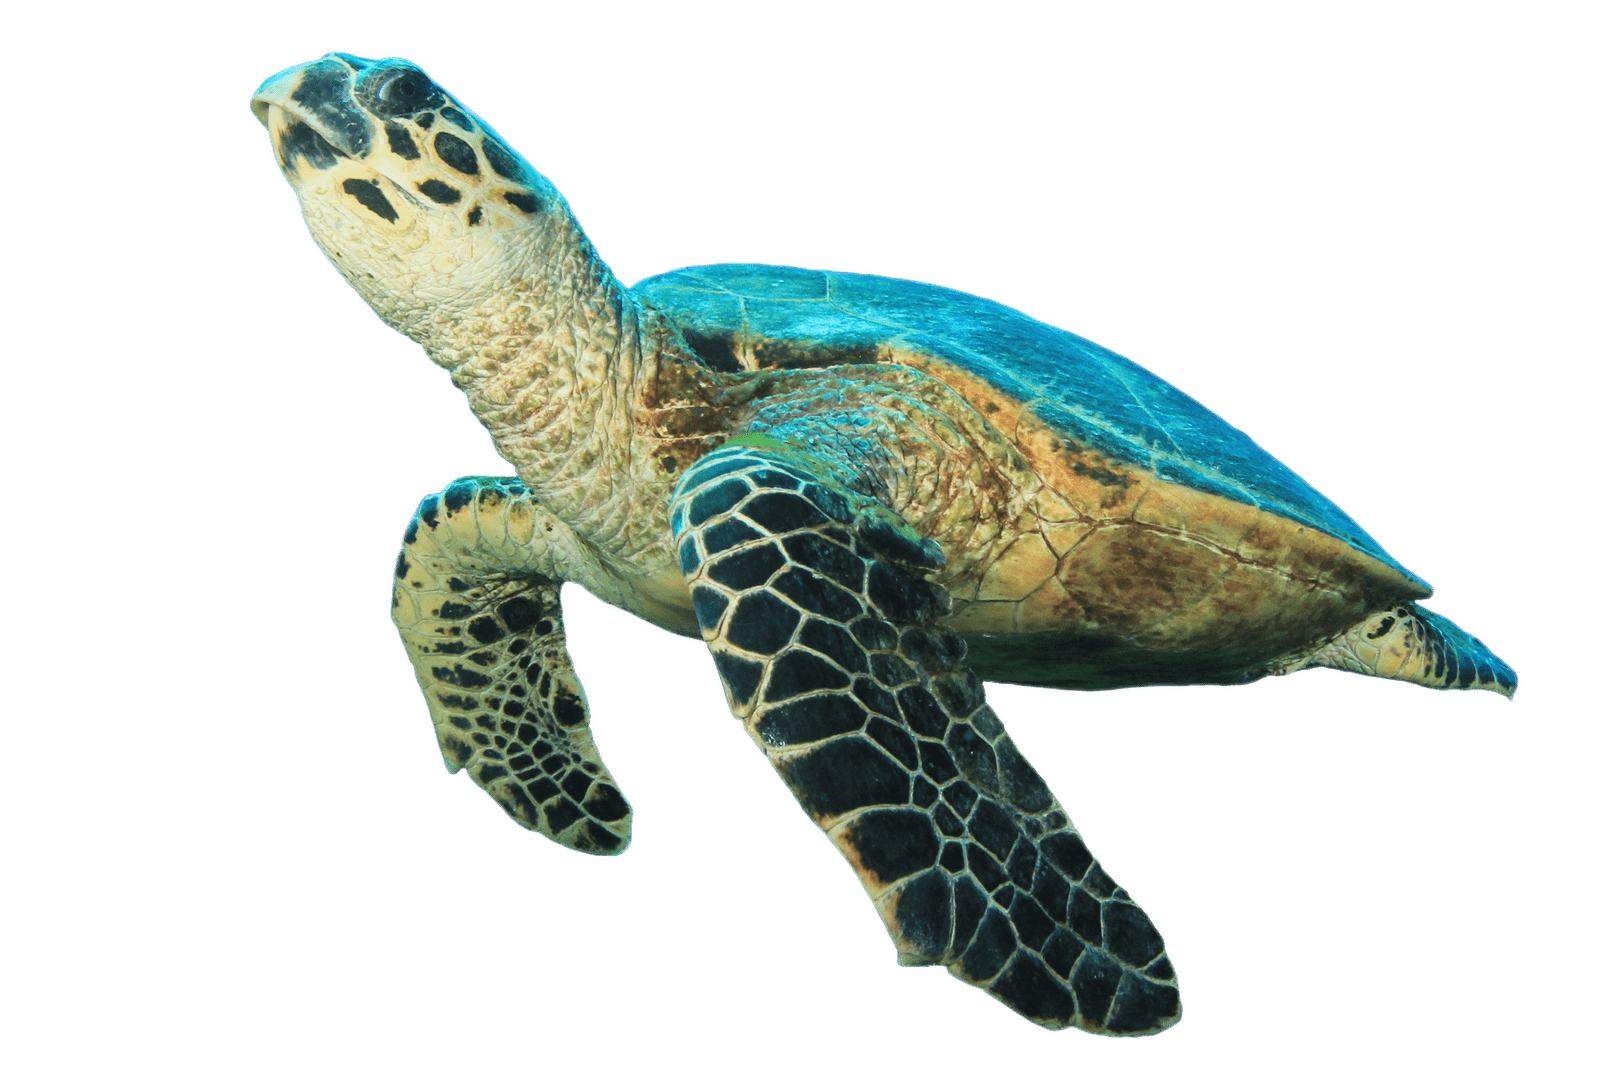 Clipart turtle transparent background. Turtles png images stickpng